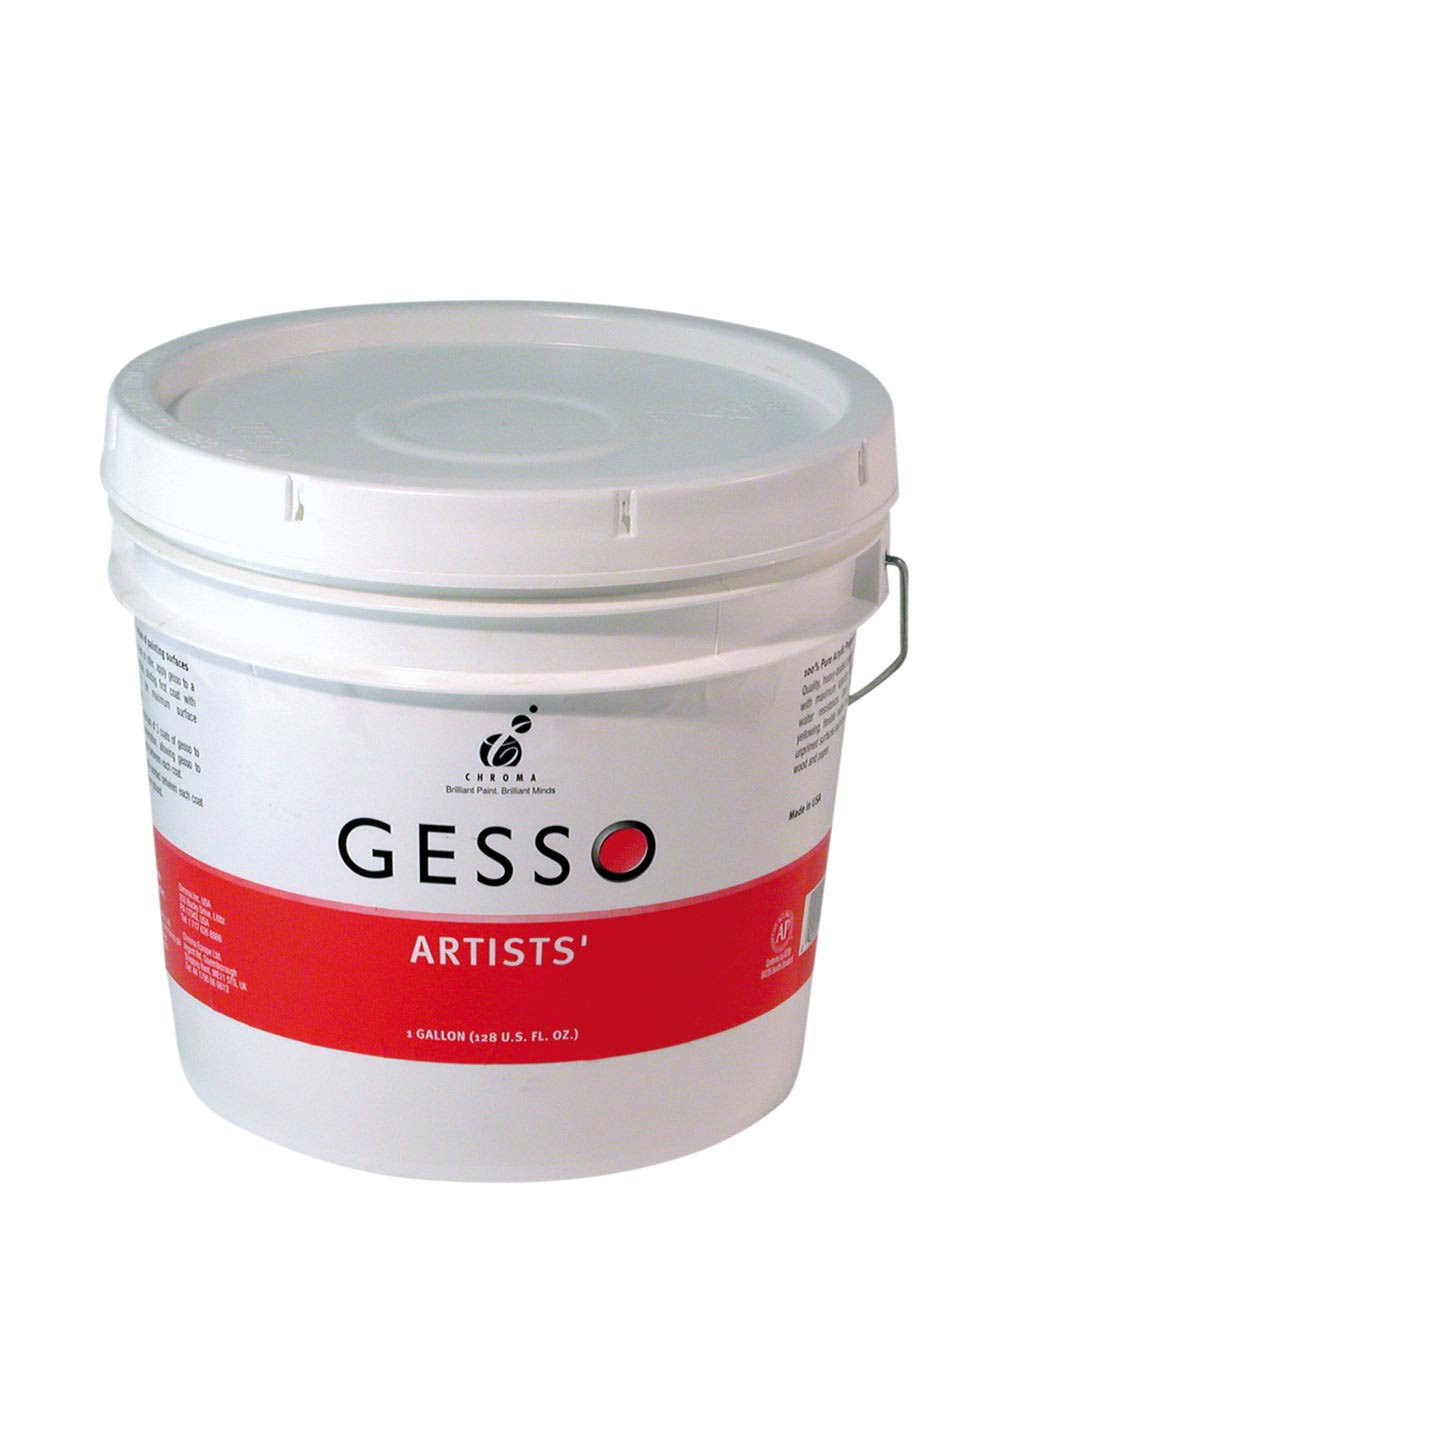 Chroma - Artists' Gesso - Gallon, White